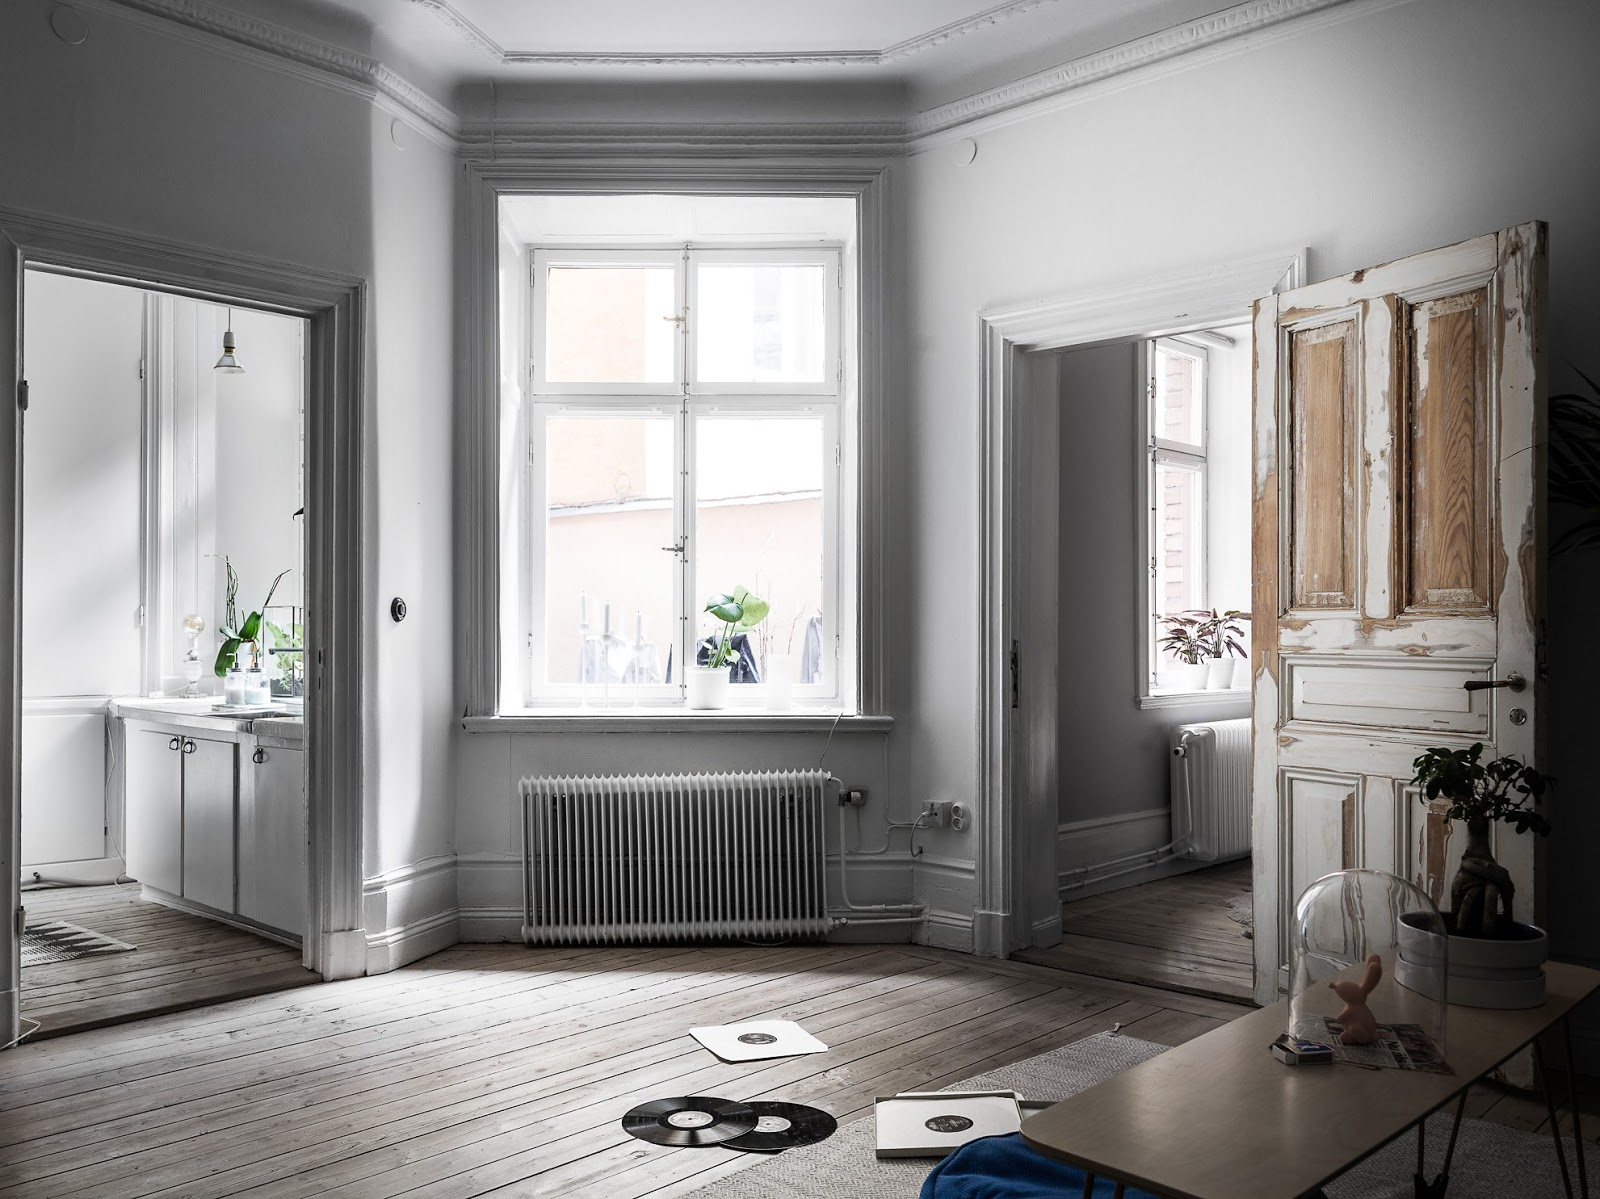 high ceilings apartment with wooden floors, white painted walls, danish design, scraped paint